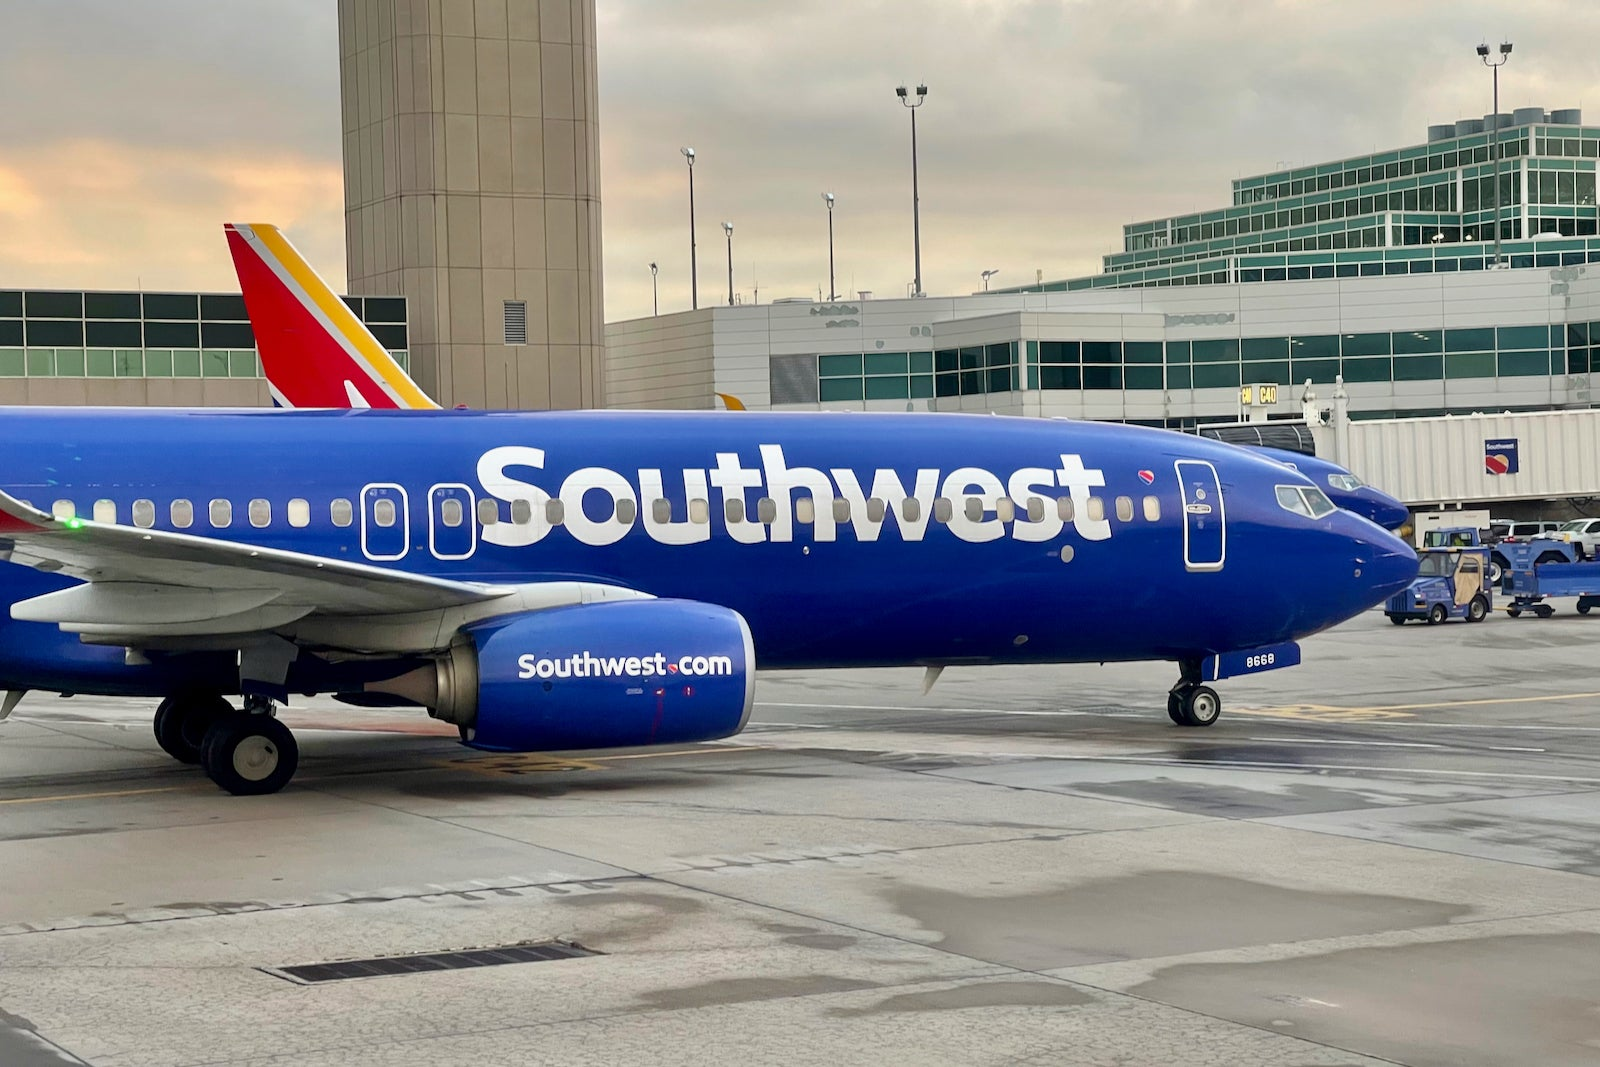 Incredible deal: Save 50% on all Southwest flights, including awards - The Points Guy